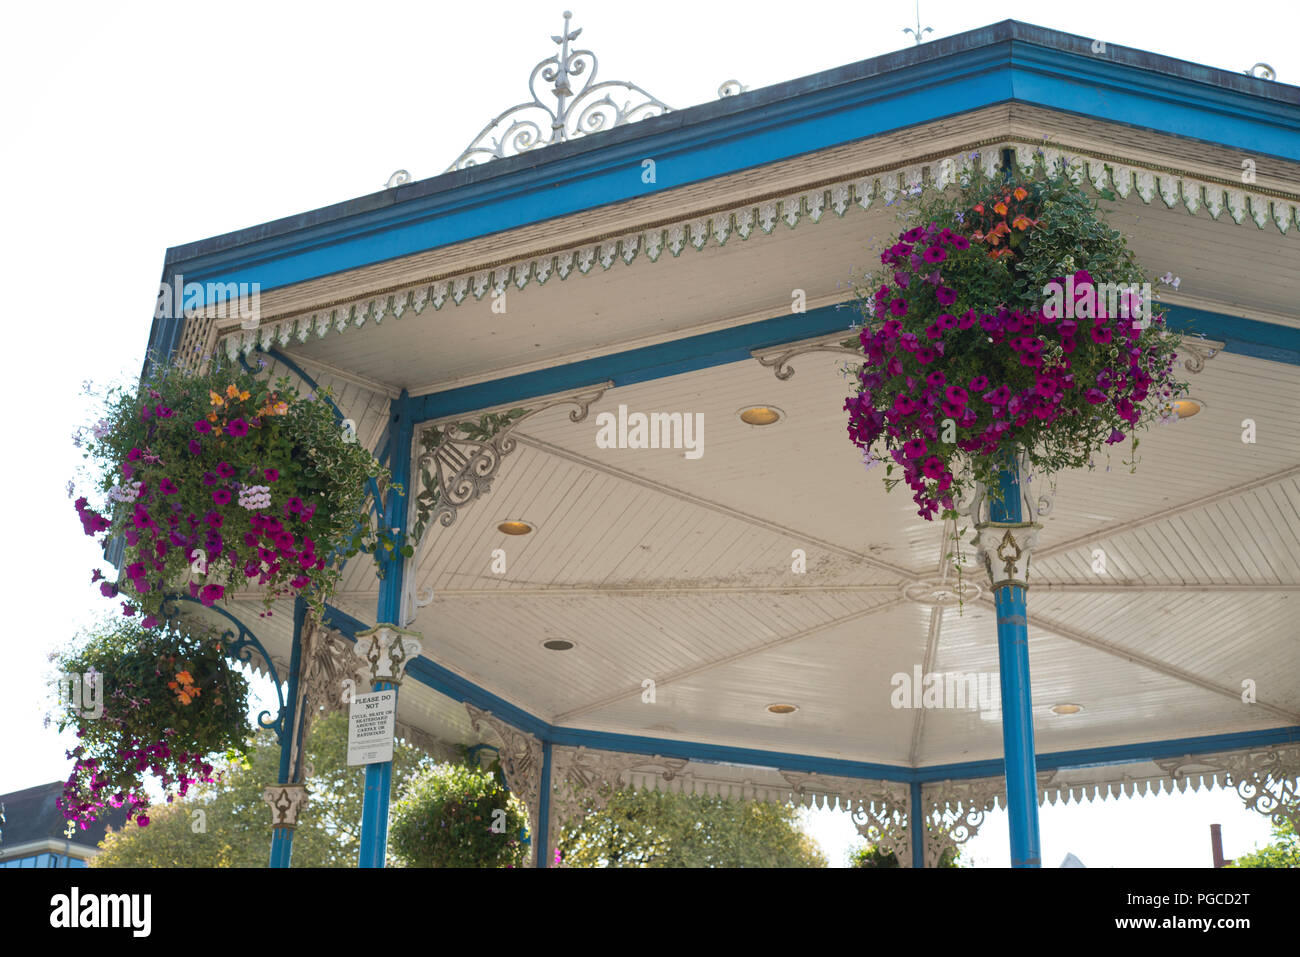 The floral displays around the bandstand roof in the Carfax of Horsham town center. Summer flowers in hanging baskets. - Stock Image